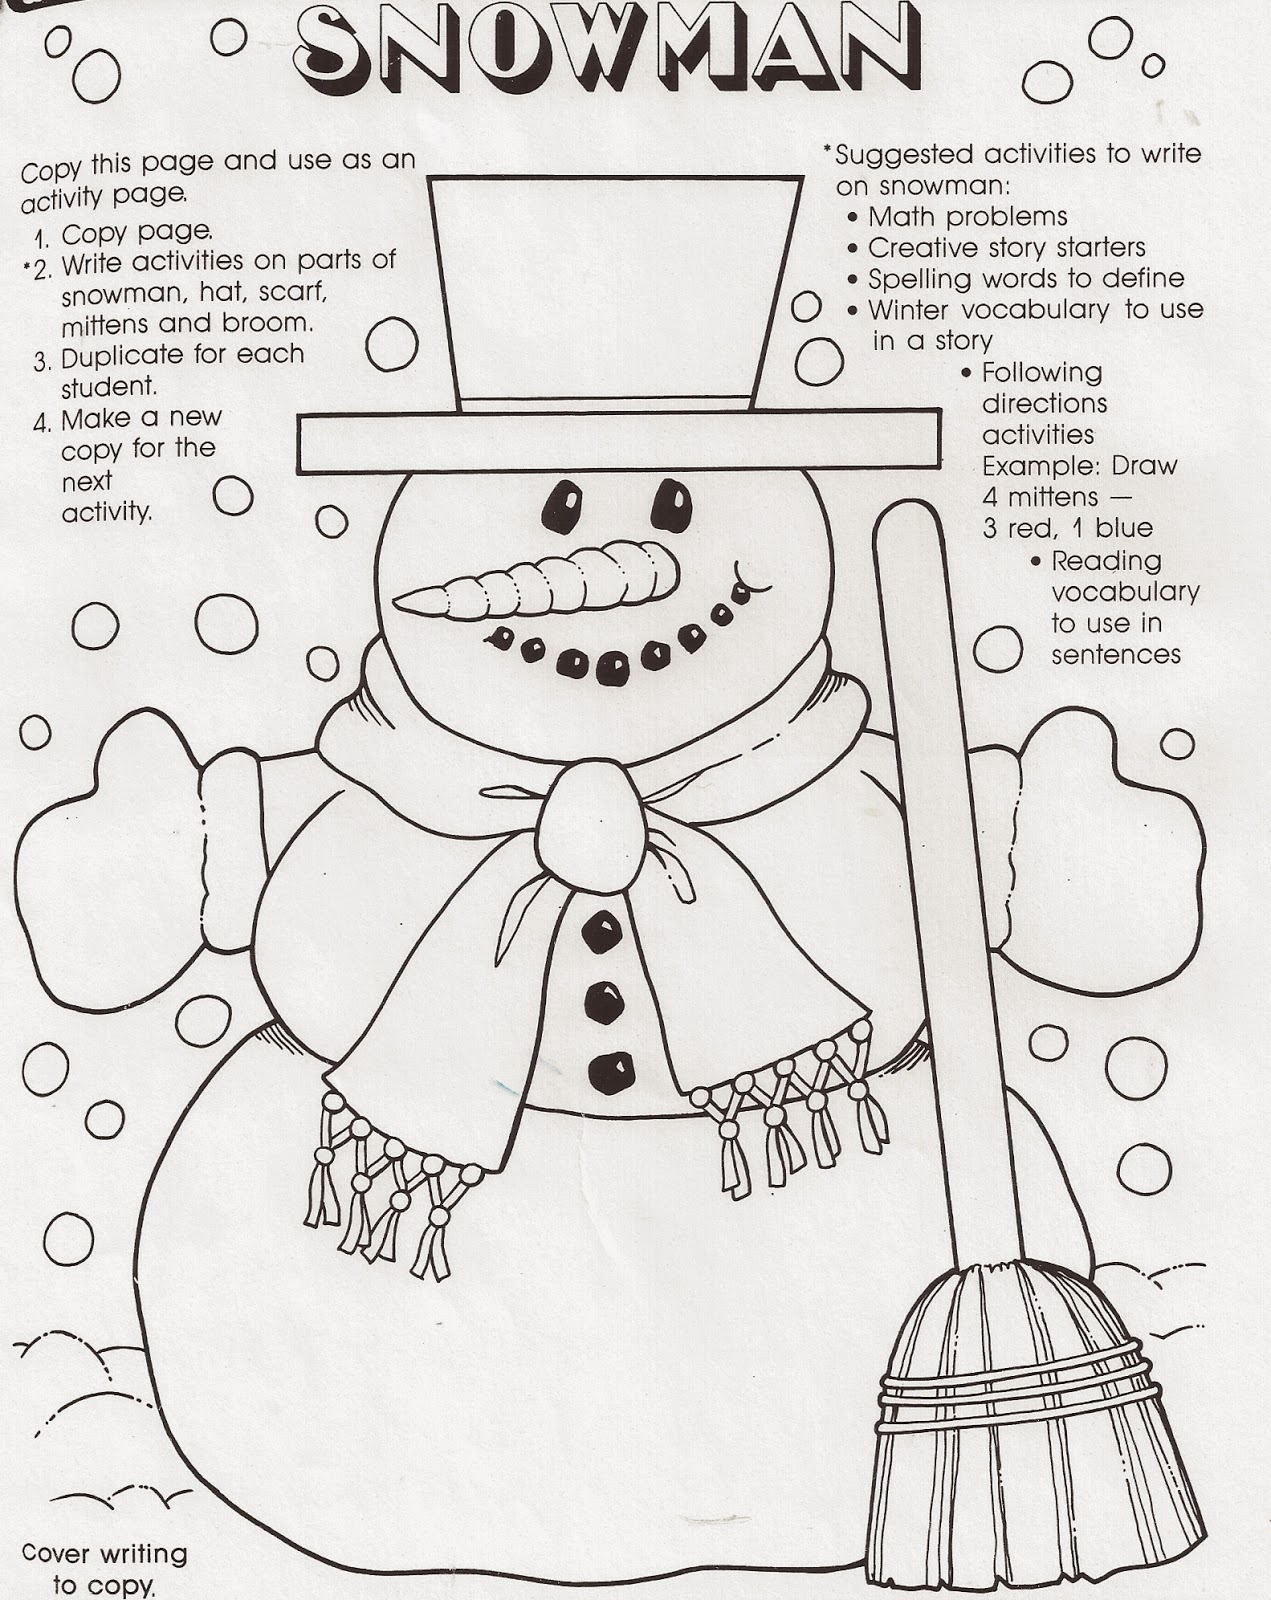 ELEMENTARY SCHOOL ENRICHMENT ACTIVITIES: SNOWMAN WORKSHEETS